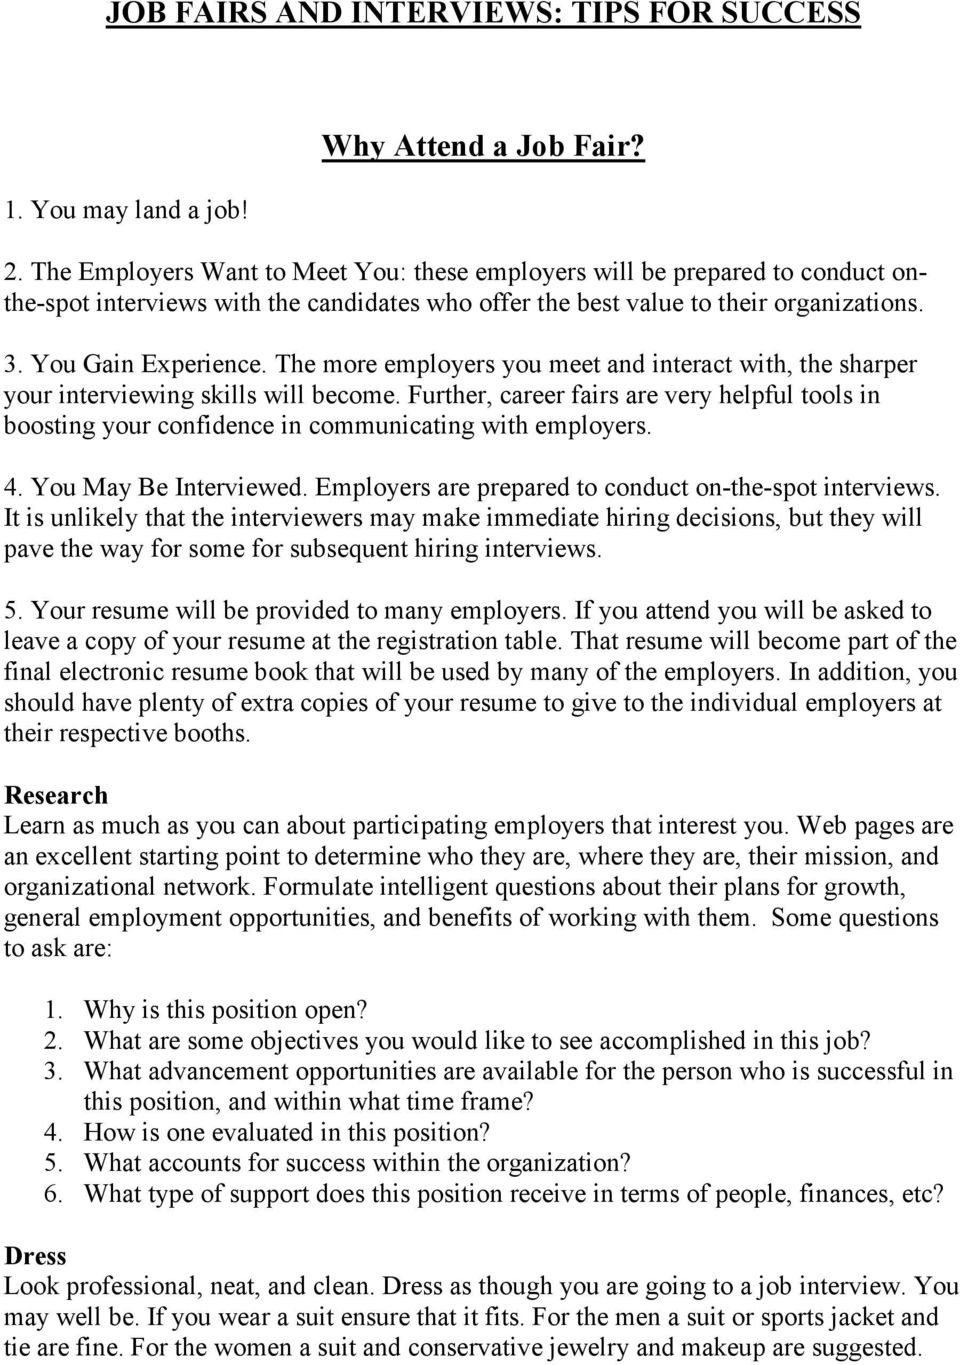 JOB FAIRS AND INTERVIEWS: TIPS FOR SUCCESS  Why Attend a Job Fair? - PDF